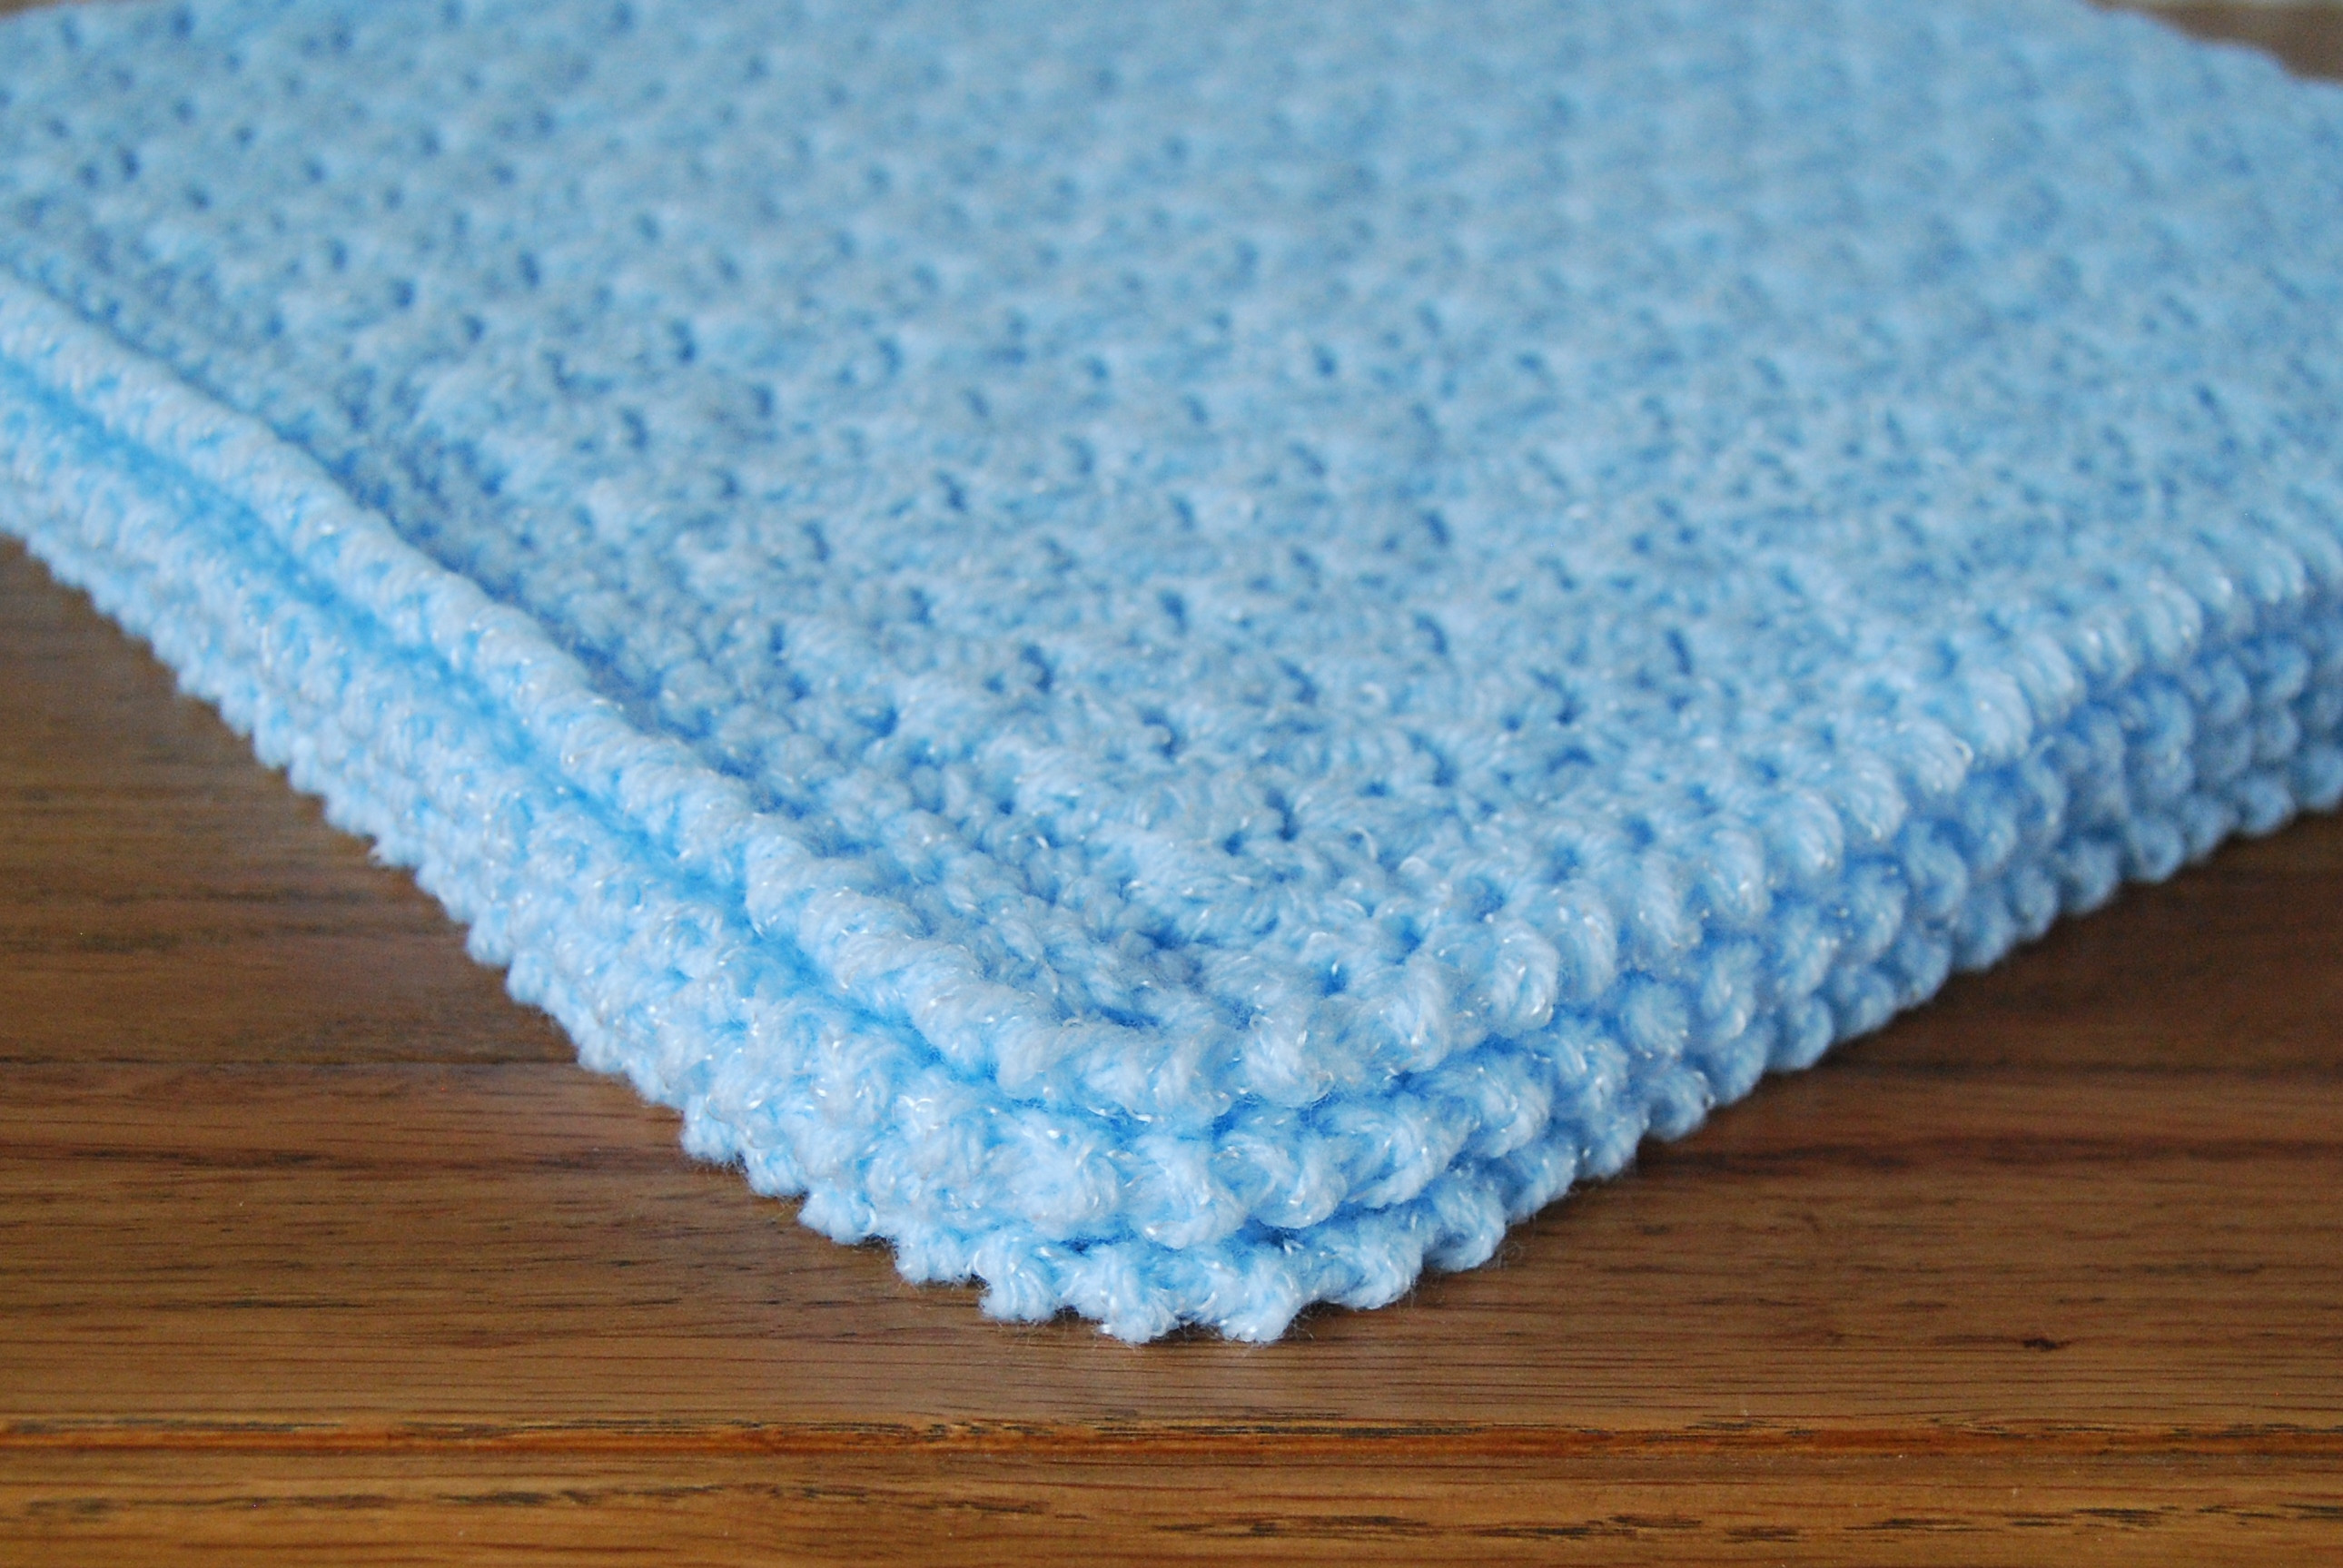 Baby Boy Crochet Blanket Patterns Lovely Beautiful Baby Boy Blanket Crochet Pattern for Pram Of Baby Boy Crochet Blanket Patterns Beautiful Marvelous Monkey Blankets Free Crochet Patterns